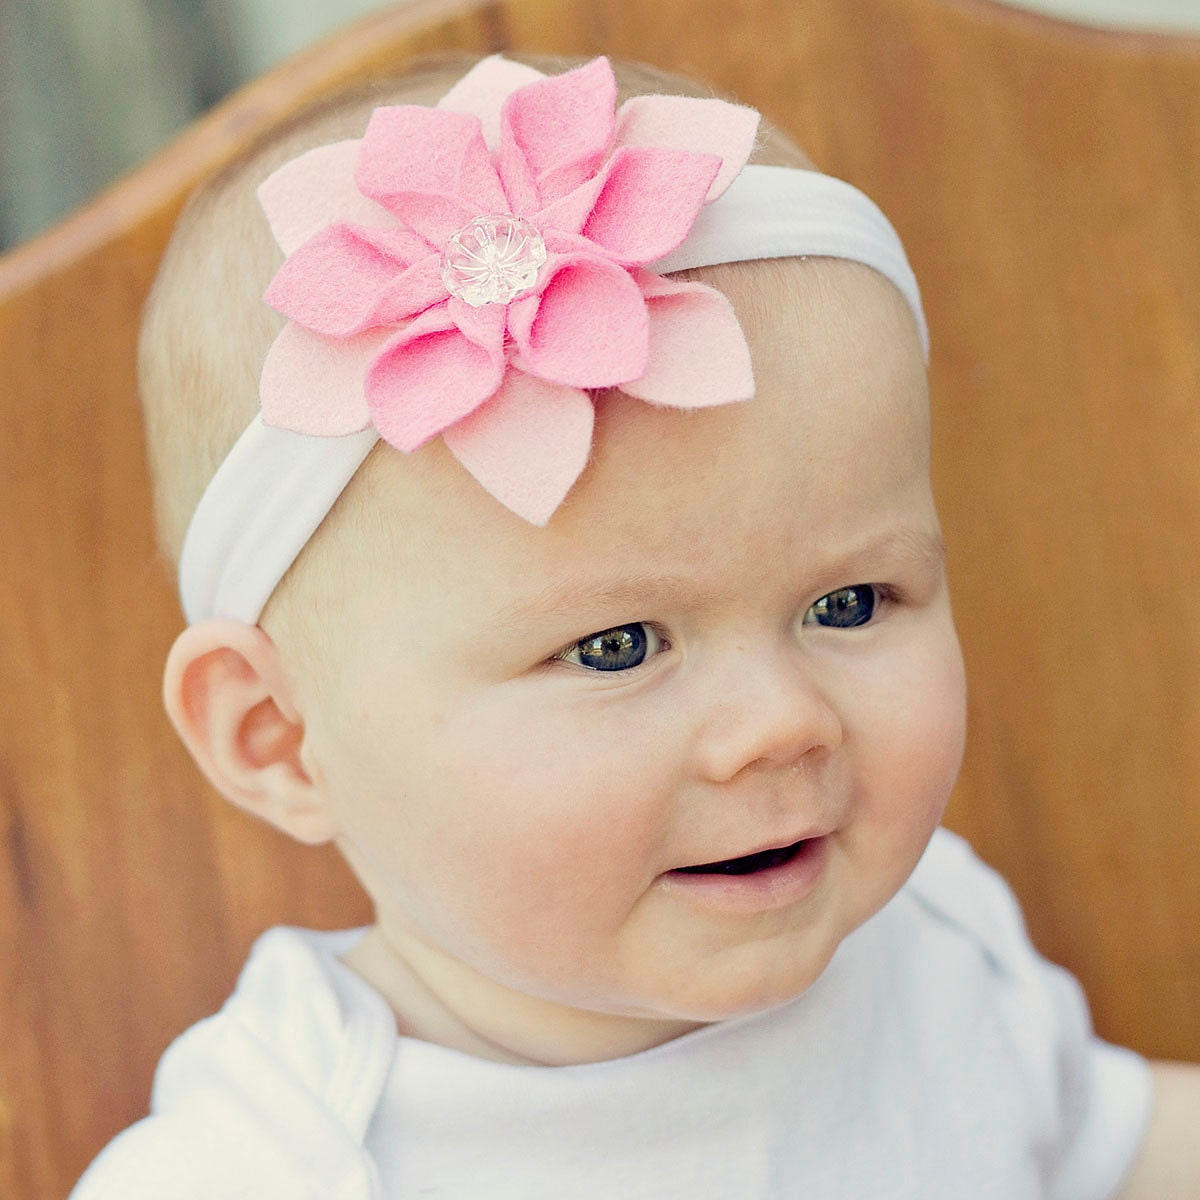 Baby Glam Felt Flower Headband - Baby-Toddler